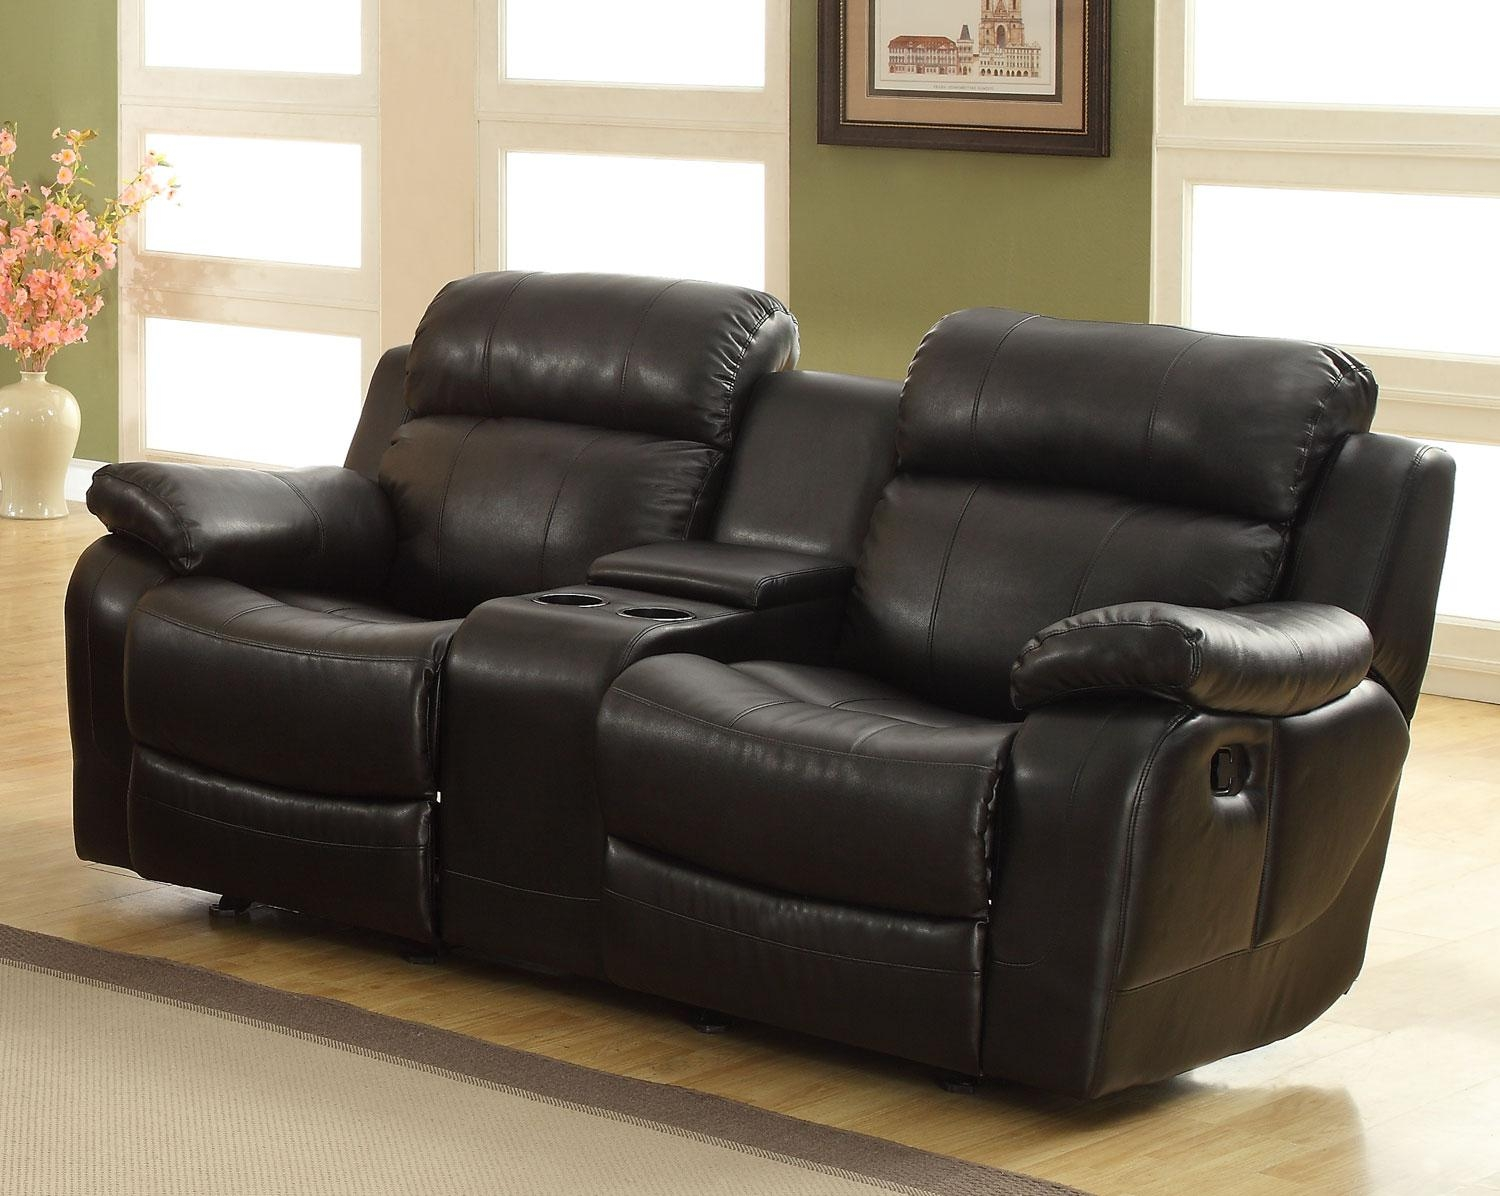 Arianna Black And White Bonded Leather Sofa And Loveseat Set For Black Leather Sofas And Loveseats (Image 1 of 20)